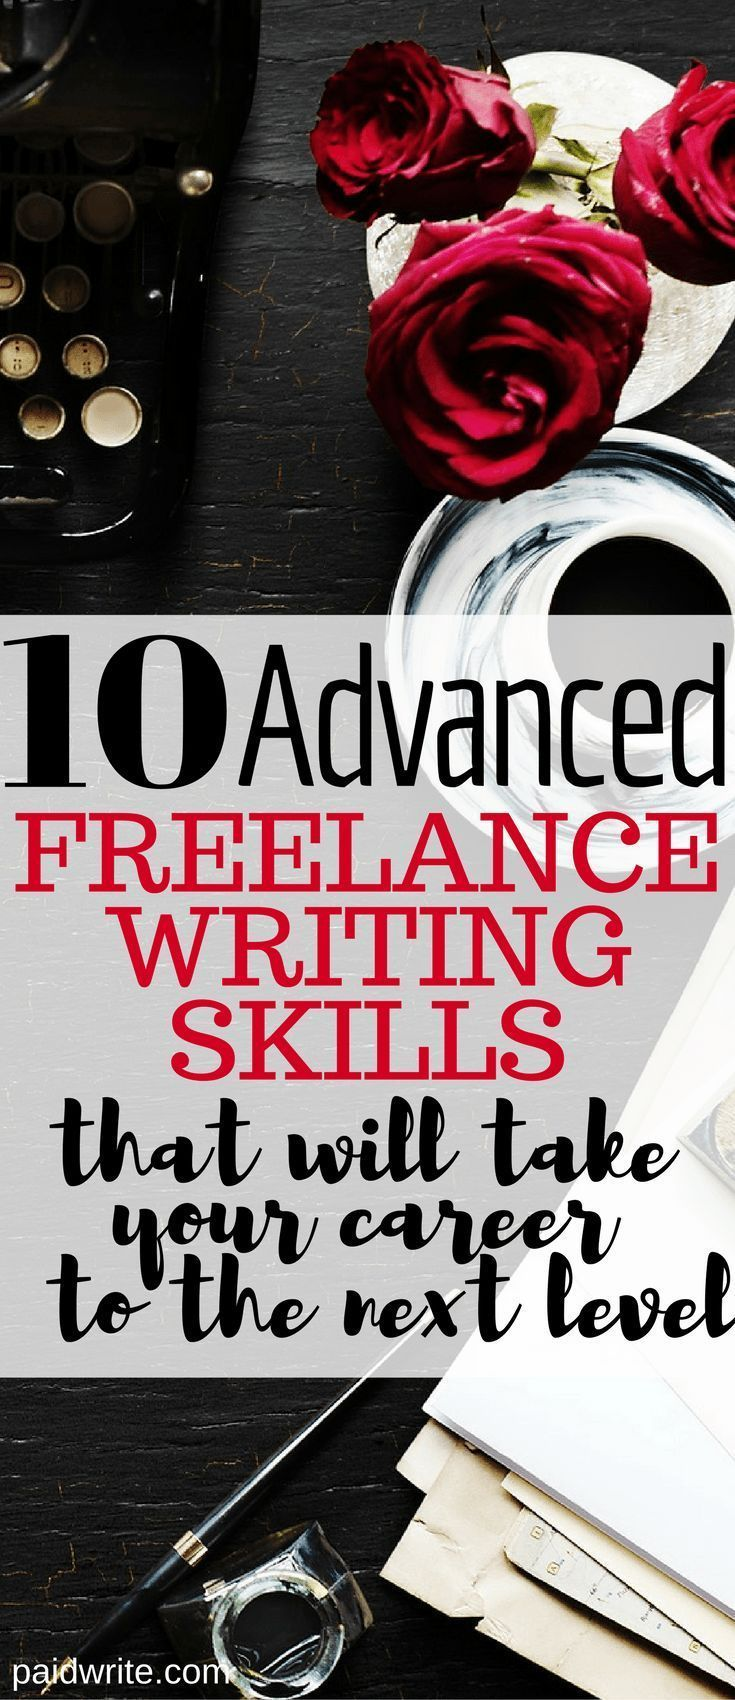 Advanced Freelance Writing Skills To Level Up Your Career